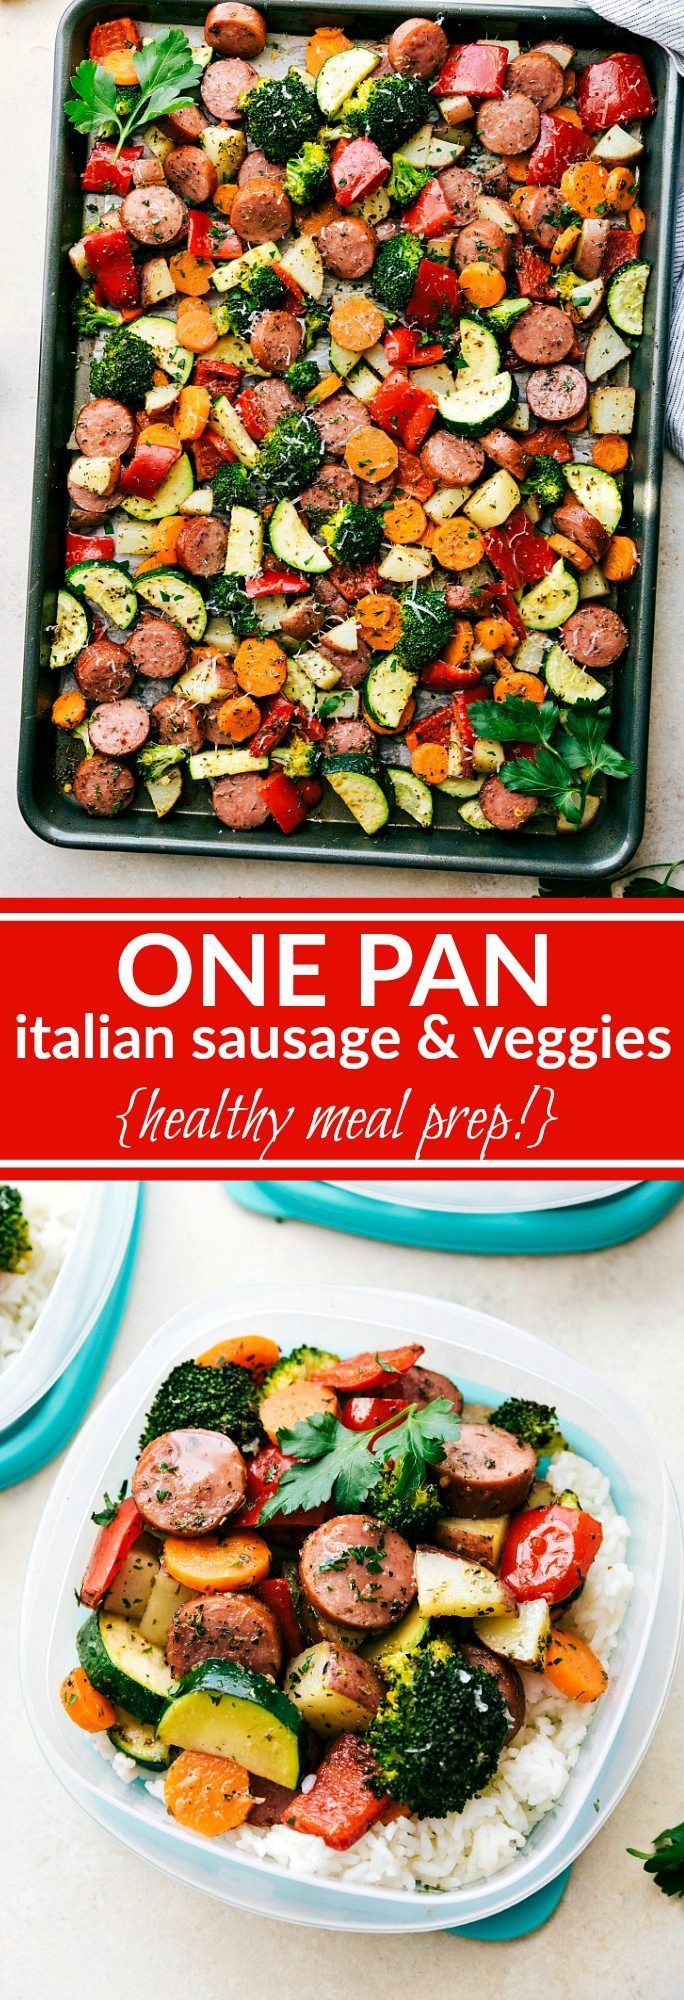 #ONE #PAN #Healthy #Italian #Sausage & #Veggies! Easy and #delicious! Great #MEAL #PREP OPTION! #Recipes #Recipesgrowtopia #recipesmycafe #recipespixelworld #recipesgt #recipescake #recipeschicken #recipesliquid #food #foodporn #recipesfood #cake #cookies #healthy #mom #kids #wedding #cakewedding